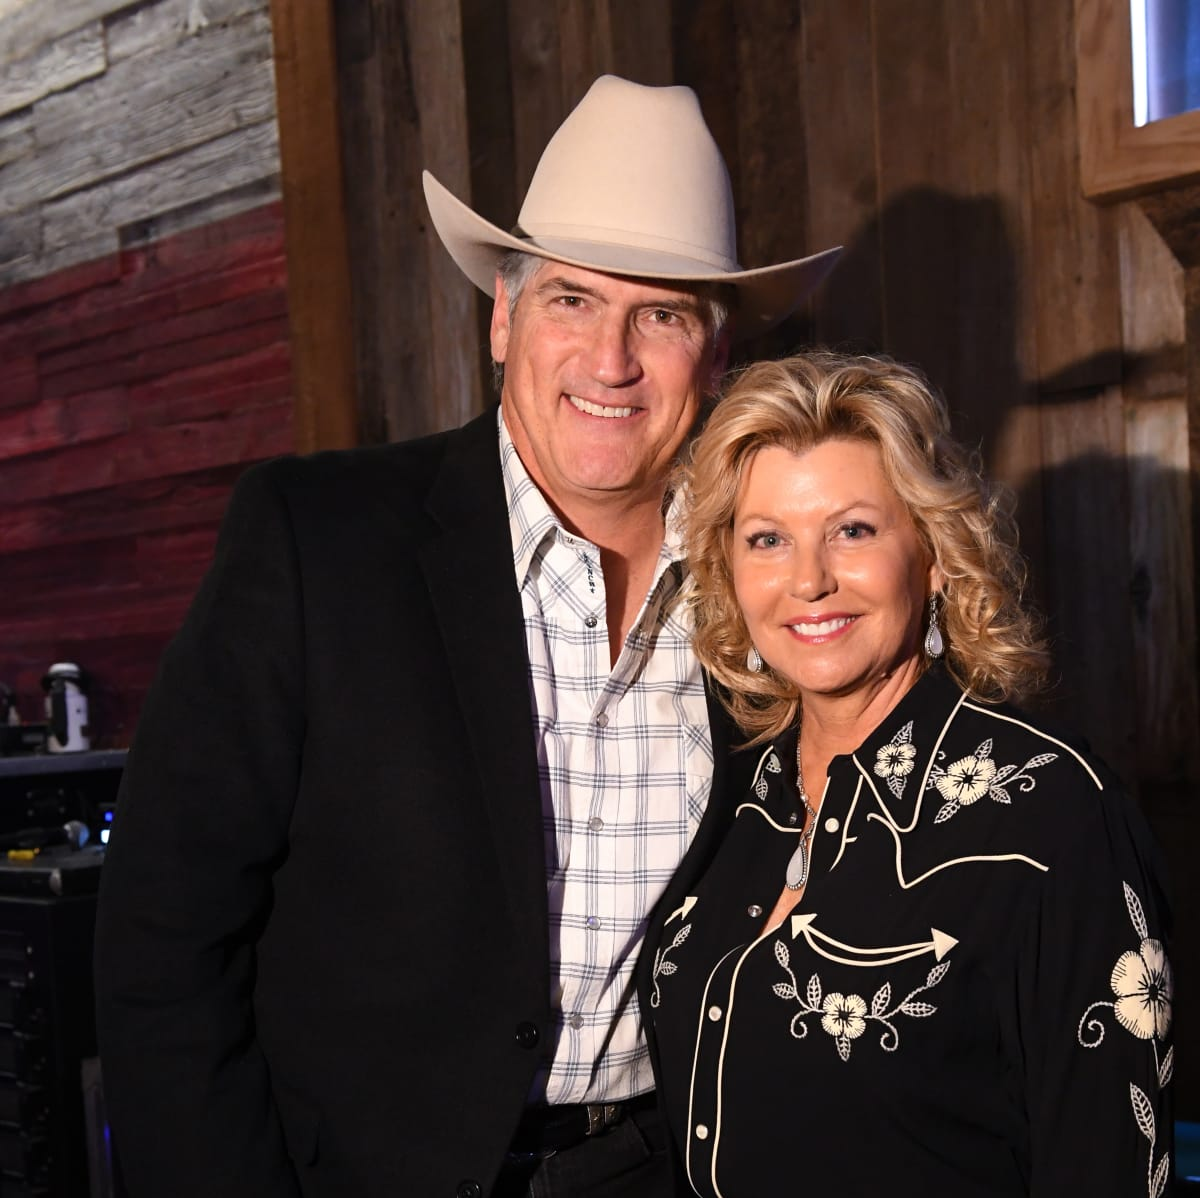 Houston, Kick Up Your Boots for Kids event, February 2018, Mike Plank, Susan Plank